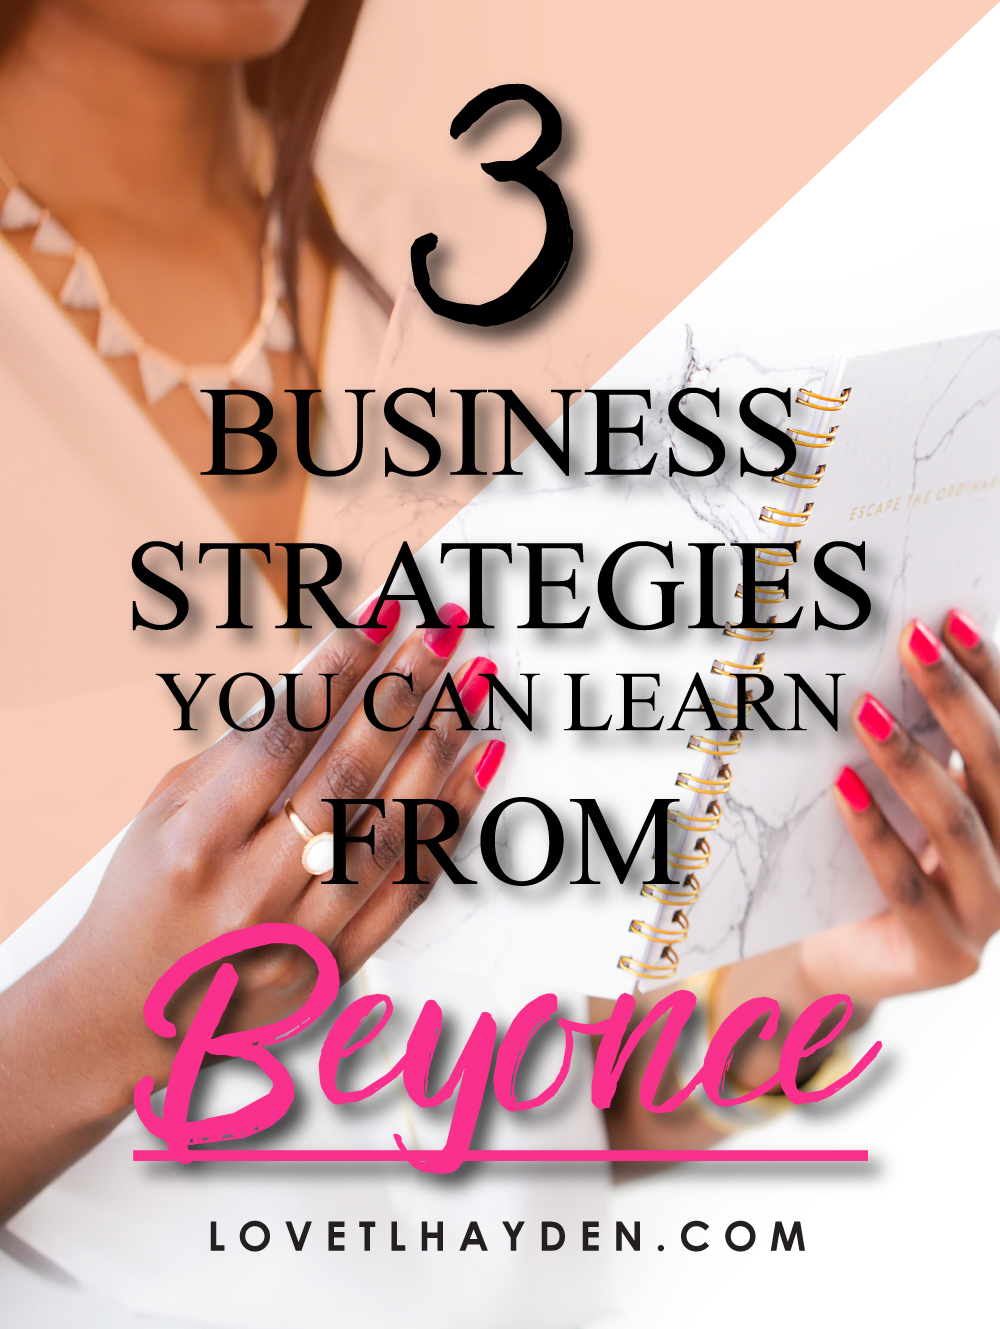 3 Business Strategies You Can Learn From Beyonce by Love, TL Hayden